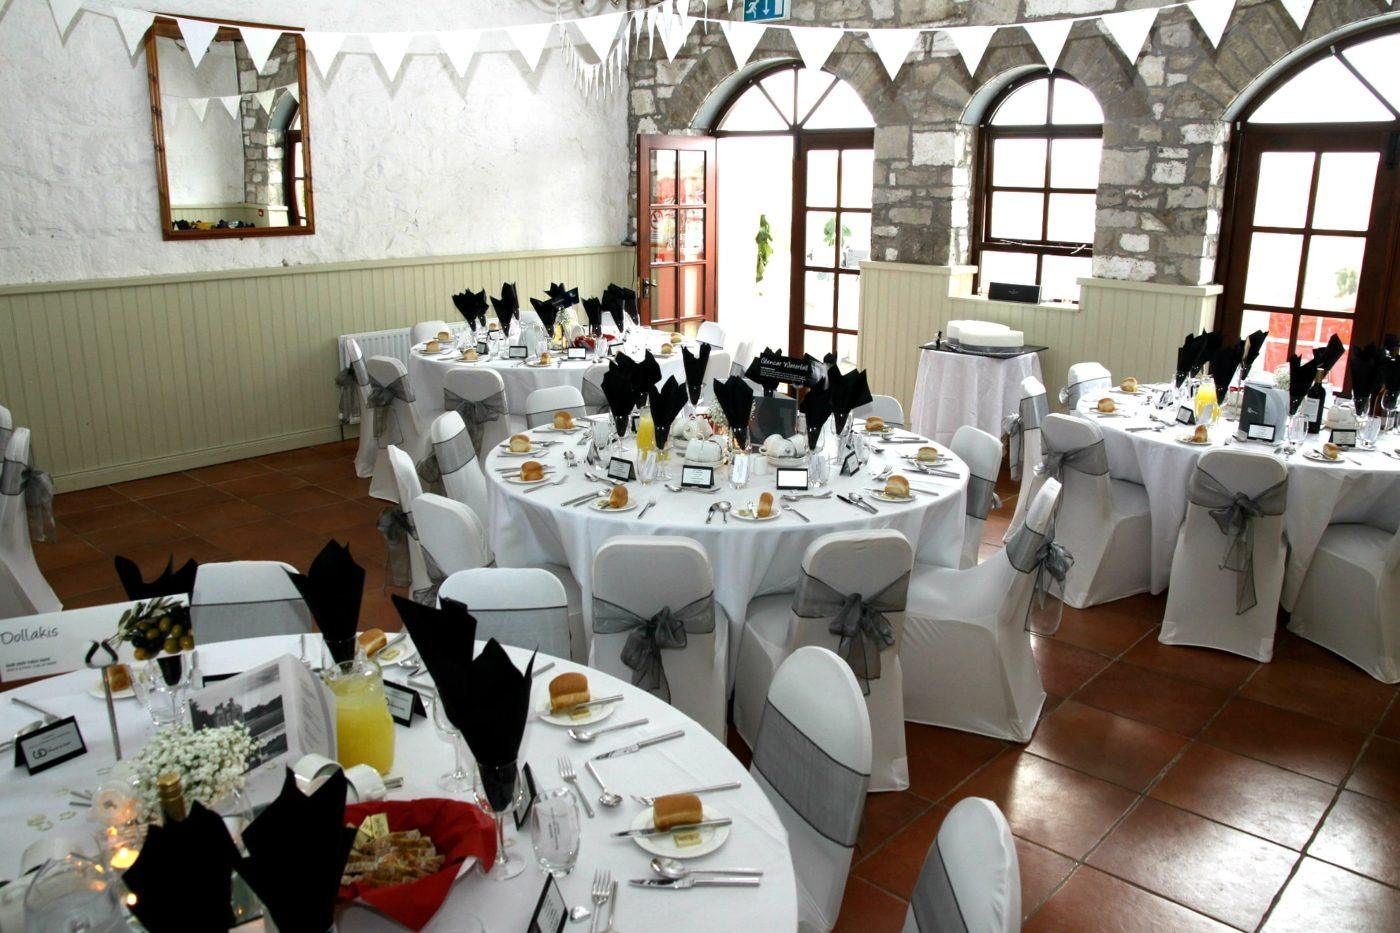 The Coach House at Blessingbourne decorated for a wedding reception